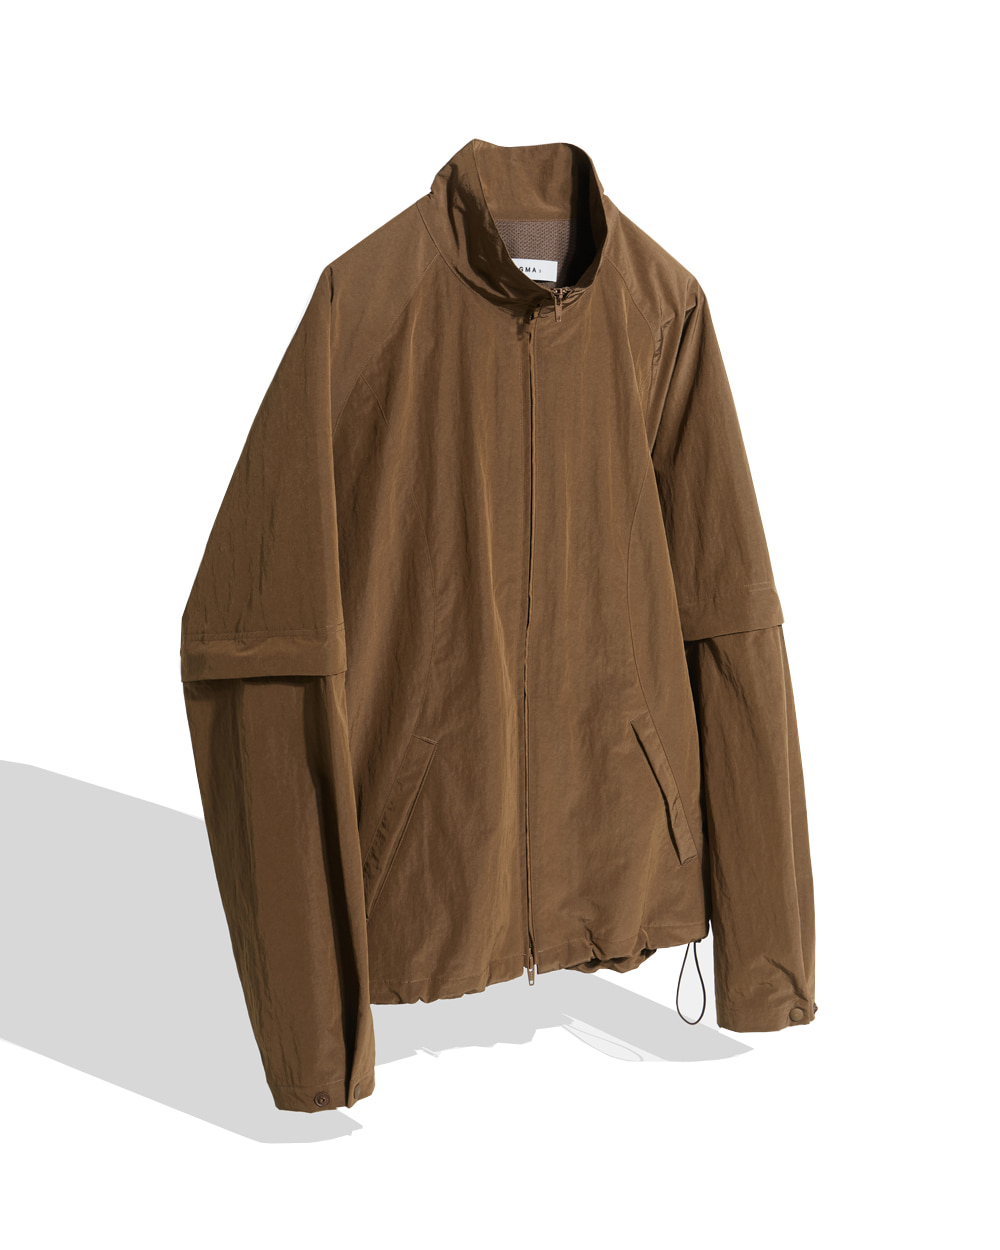 이니그마 Detachable Zip-up Jacket (Brown)